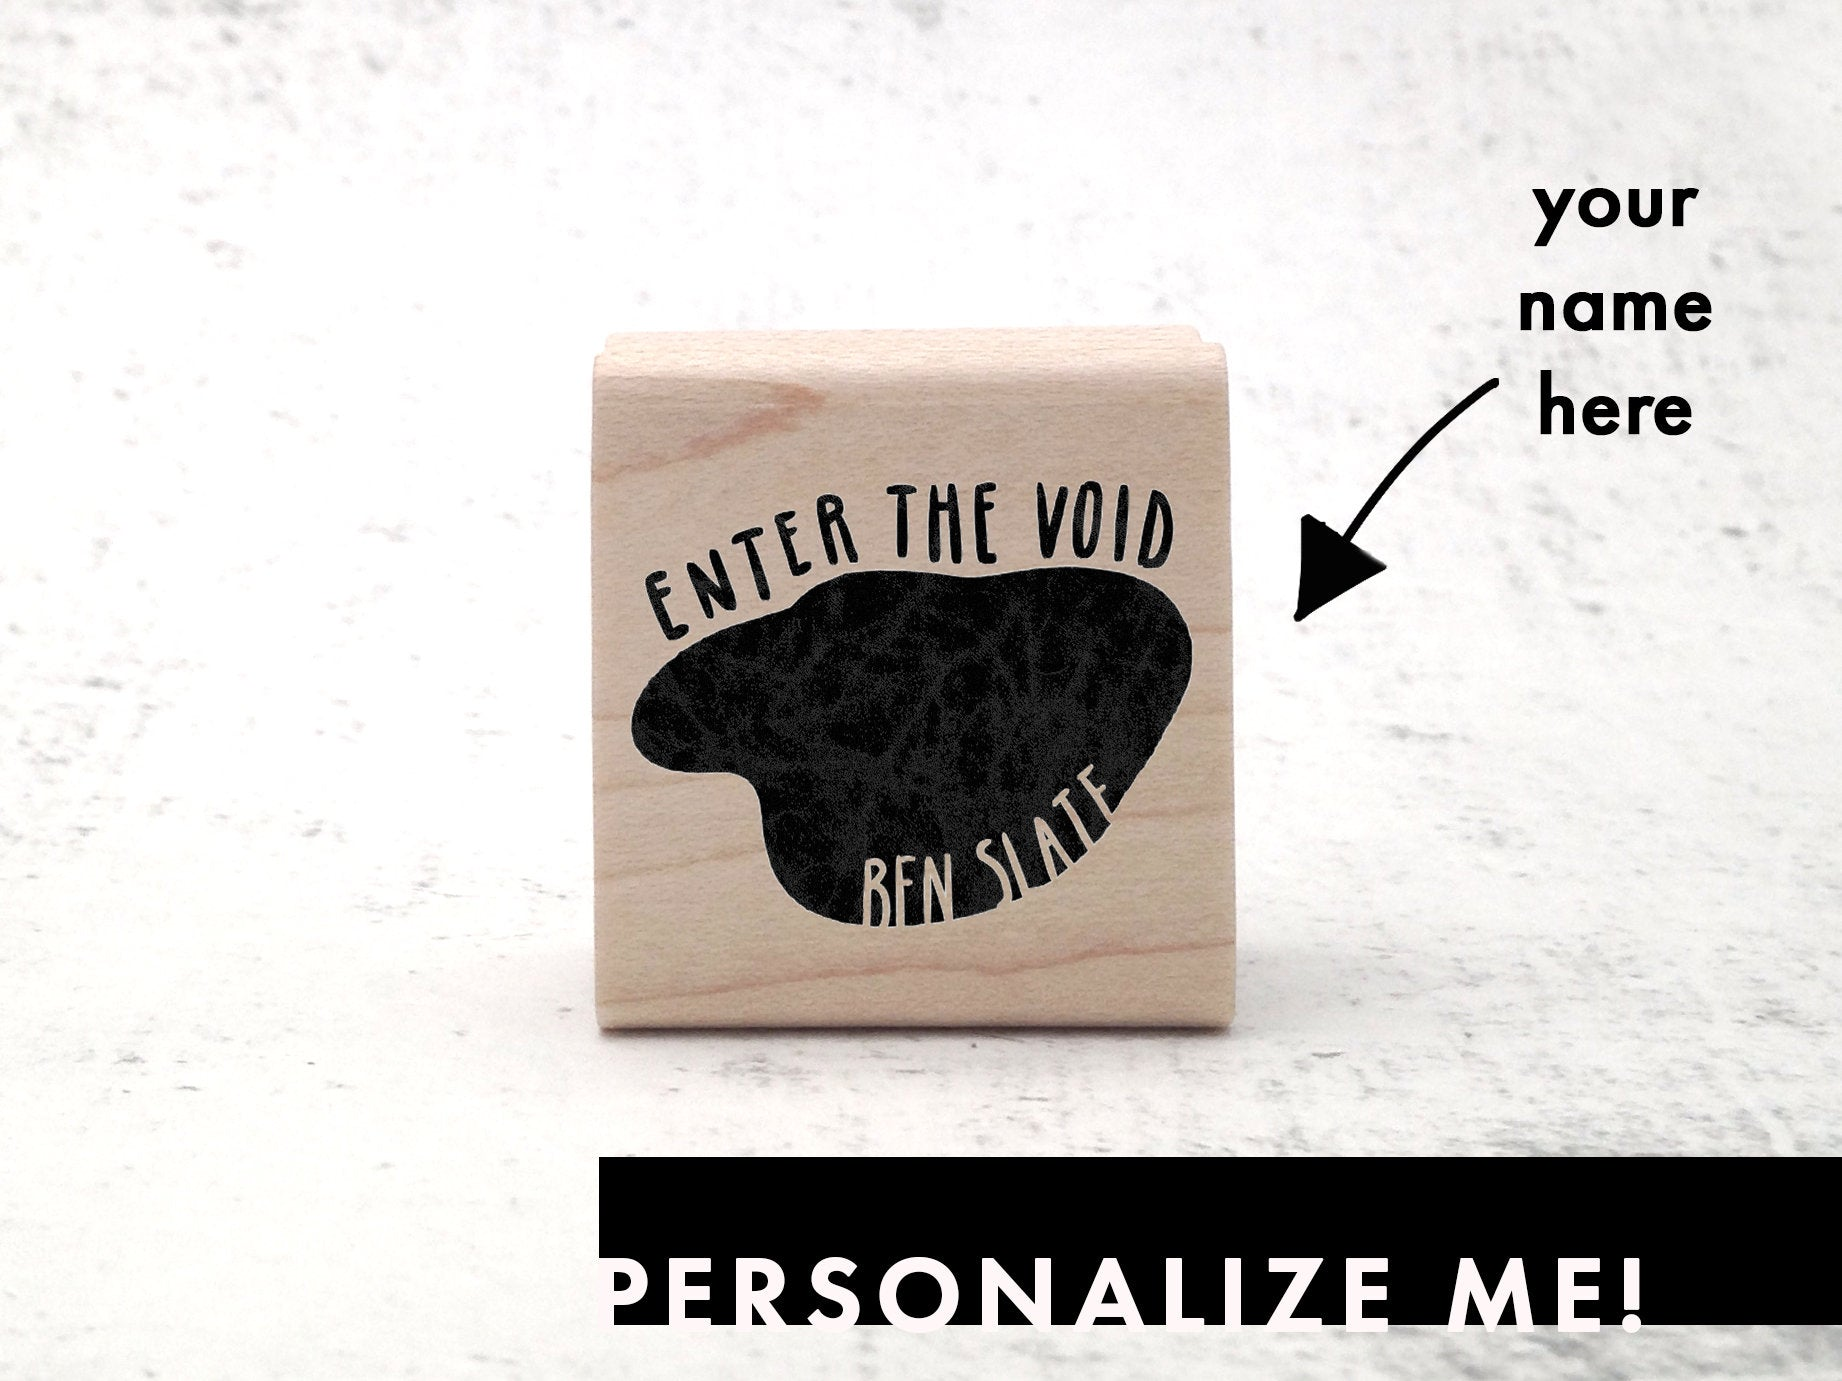 The Void - Illustrated Custom Name Stamp - Ex Libris Bookplate Stamp - Personalized Rubber Stamp - Pen Pal / Postcrossing Stamp